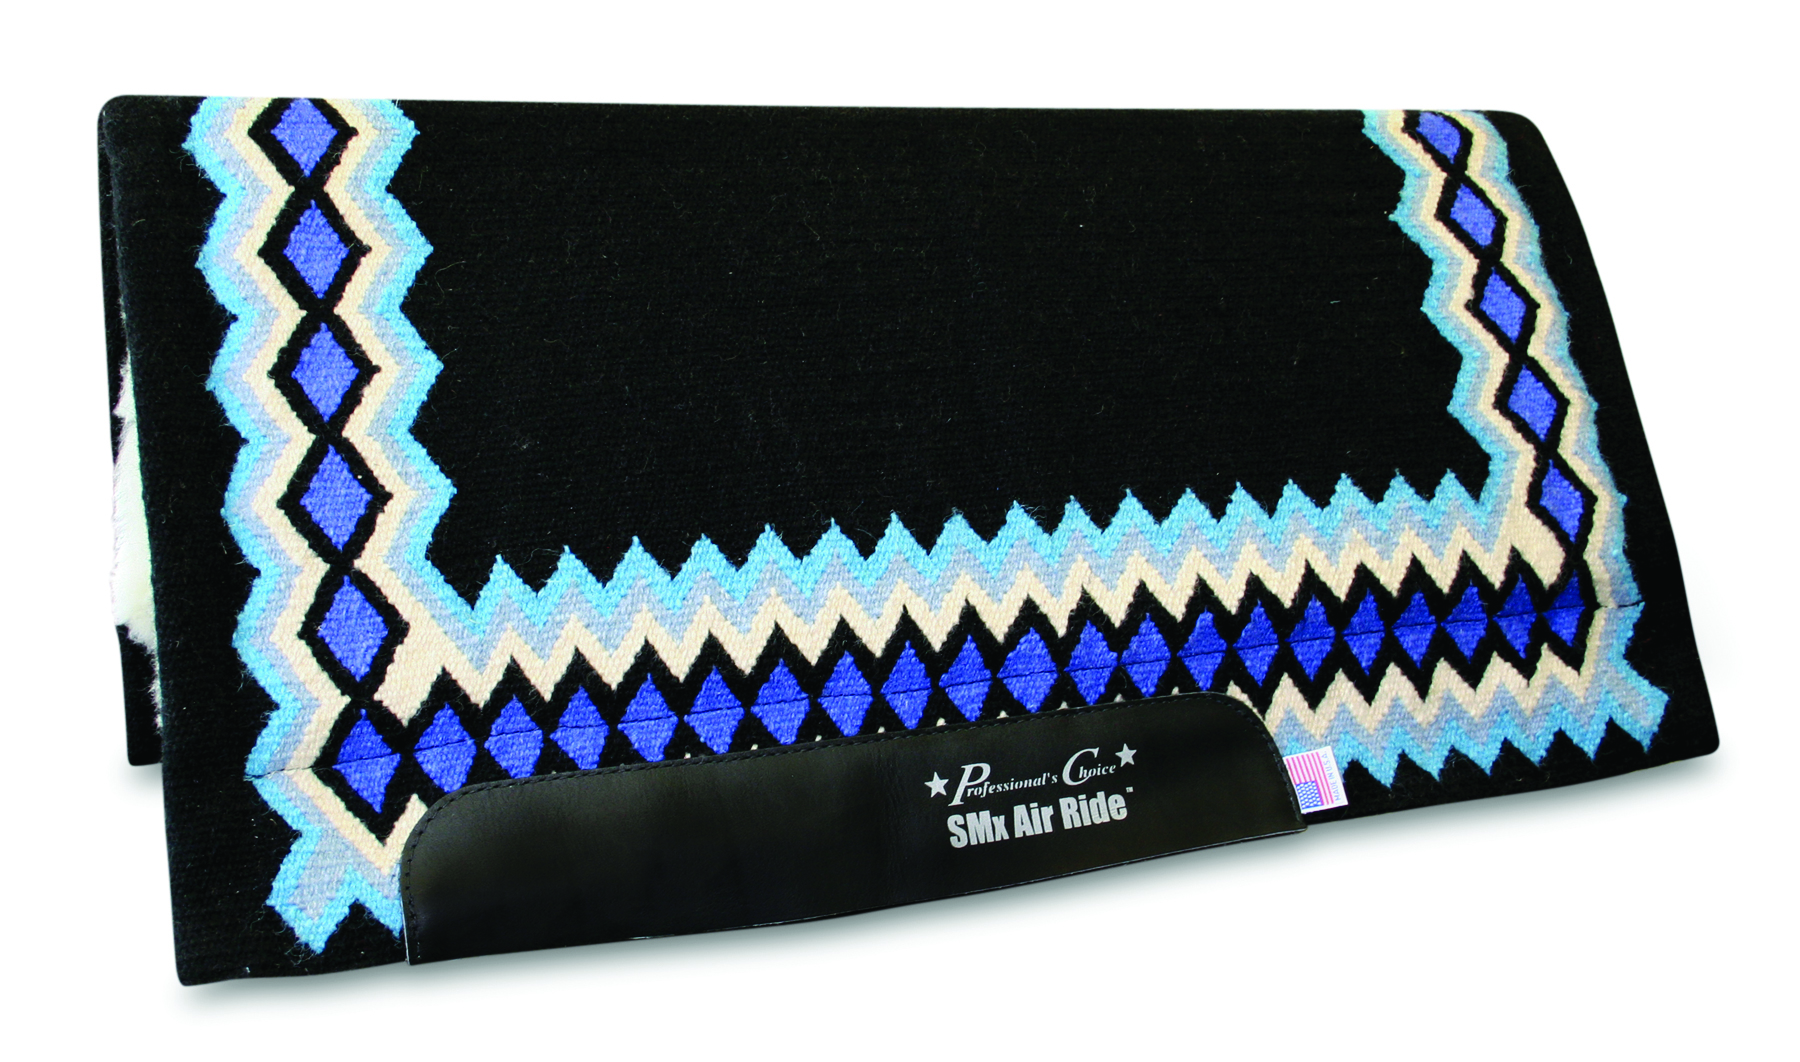 Smx Air Ride Pads